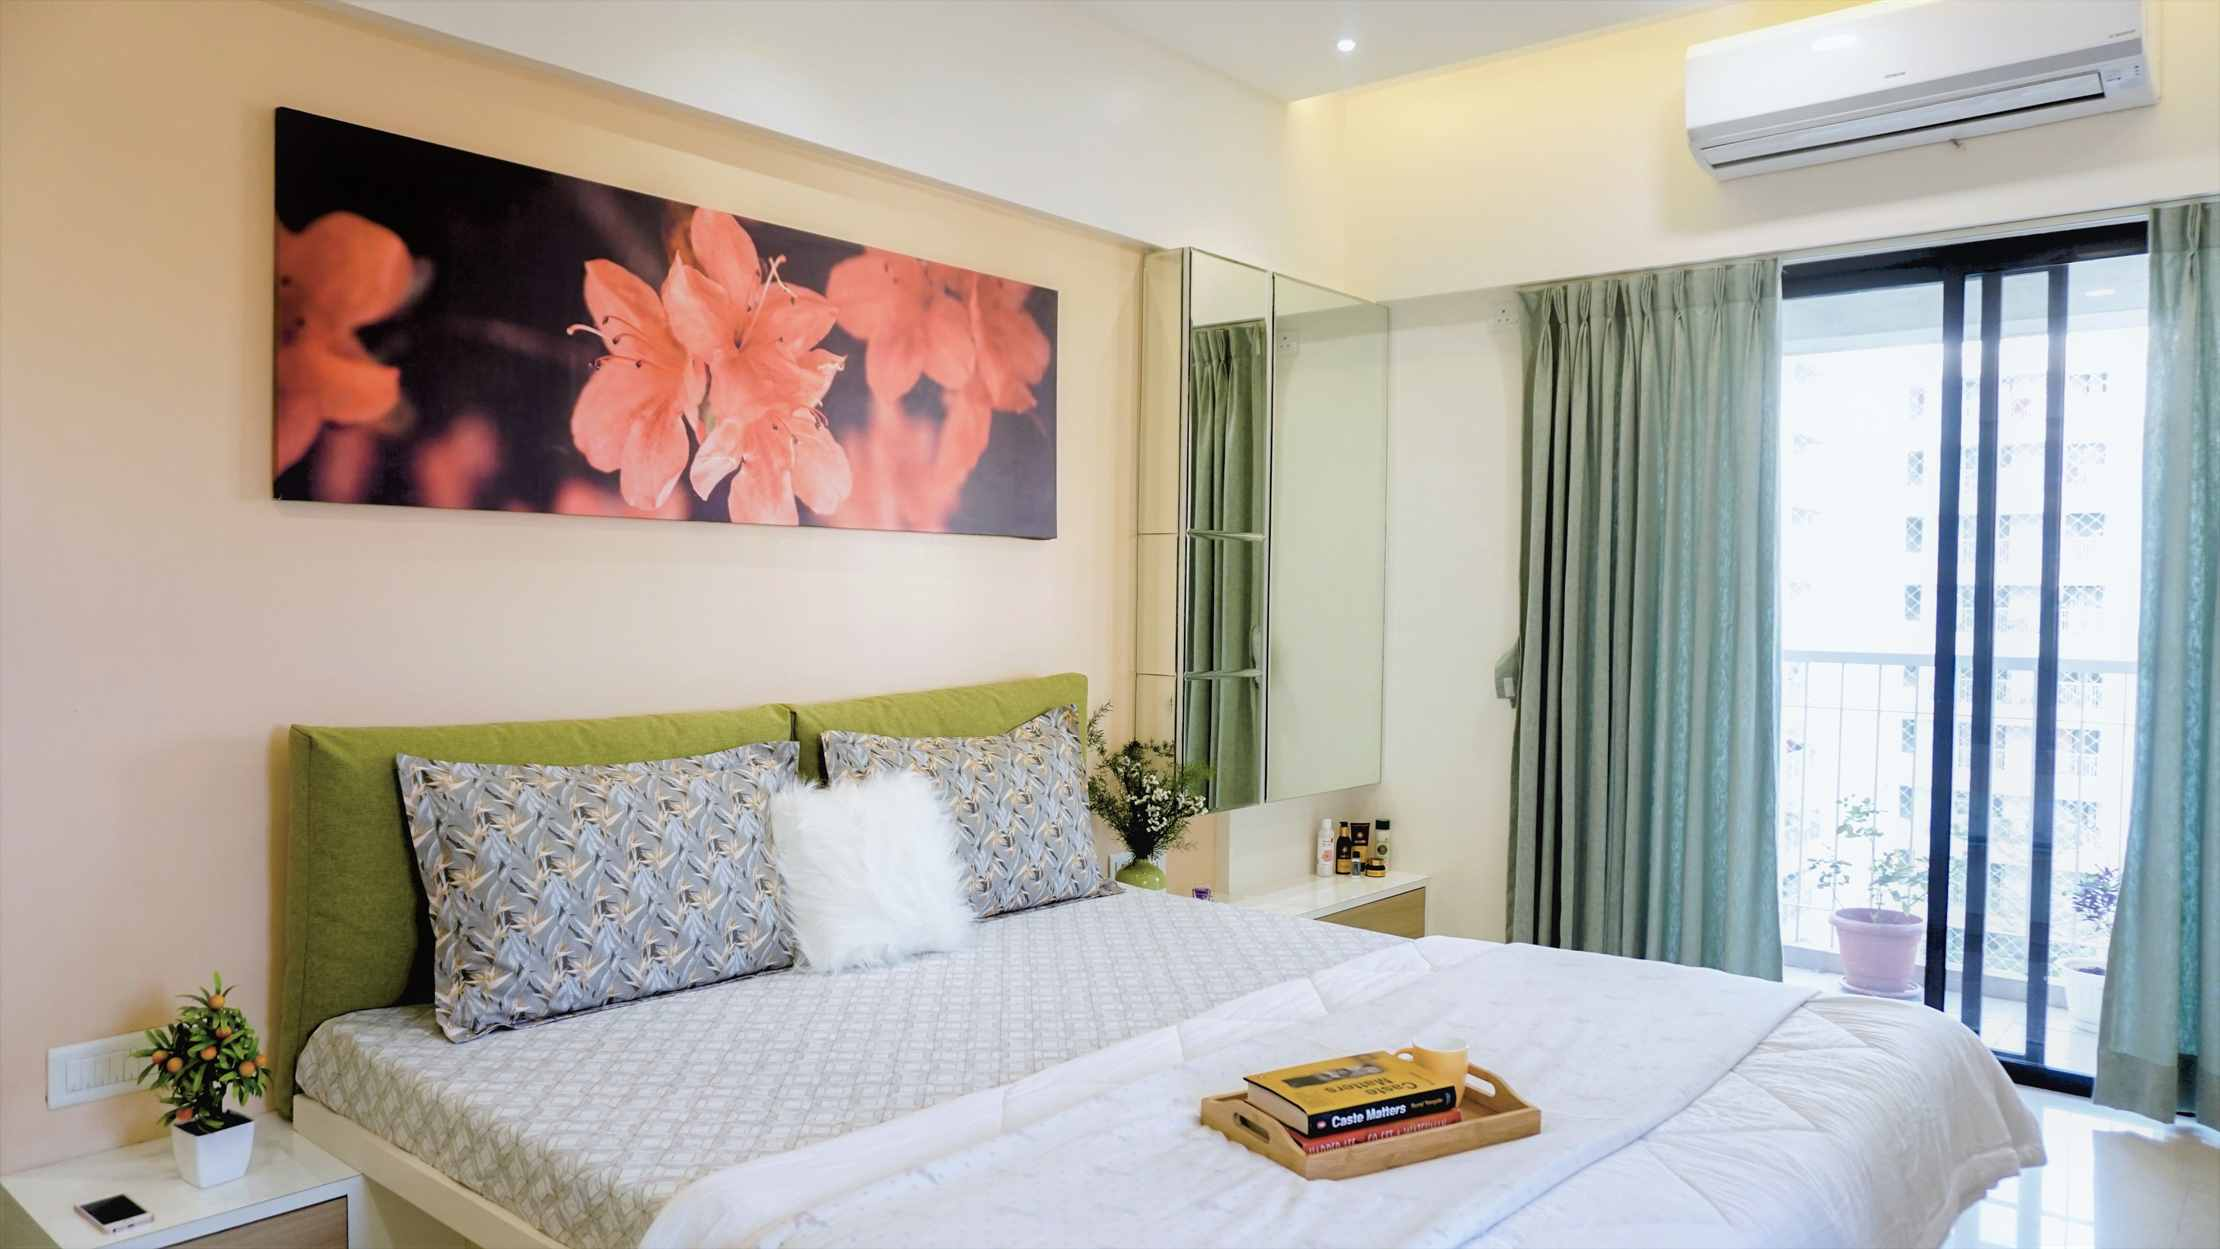 master bedroom interiors of 3bhk kalpataru serenity mundhawa pune 1